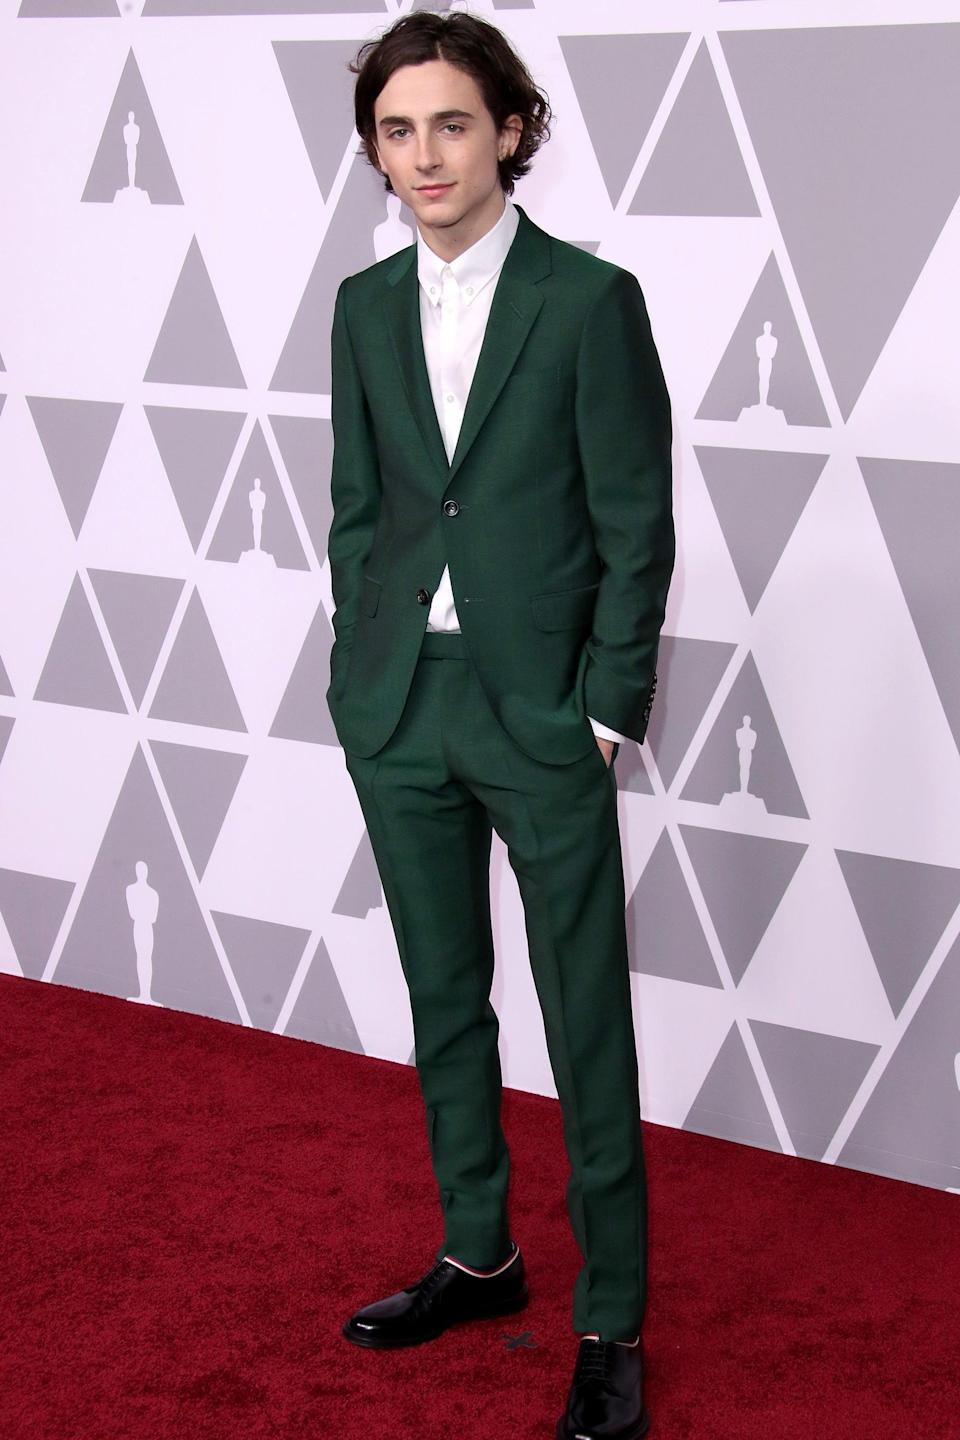 "<h2>Gucci</h2><br>We'll never get tired of seeing Timothée Chalamet in Gucci. <span class=""copyright""> Photo: Dan MacMedan/Getty Images.</span>"